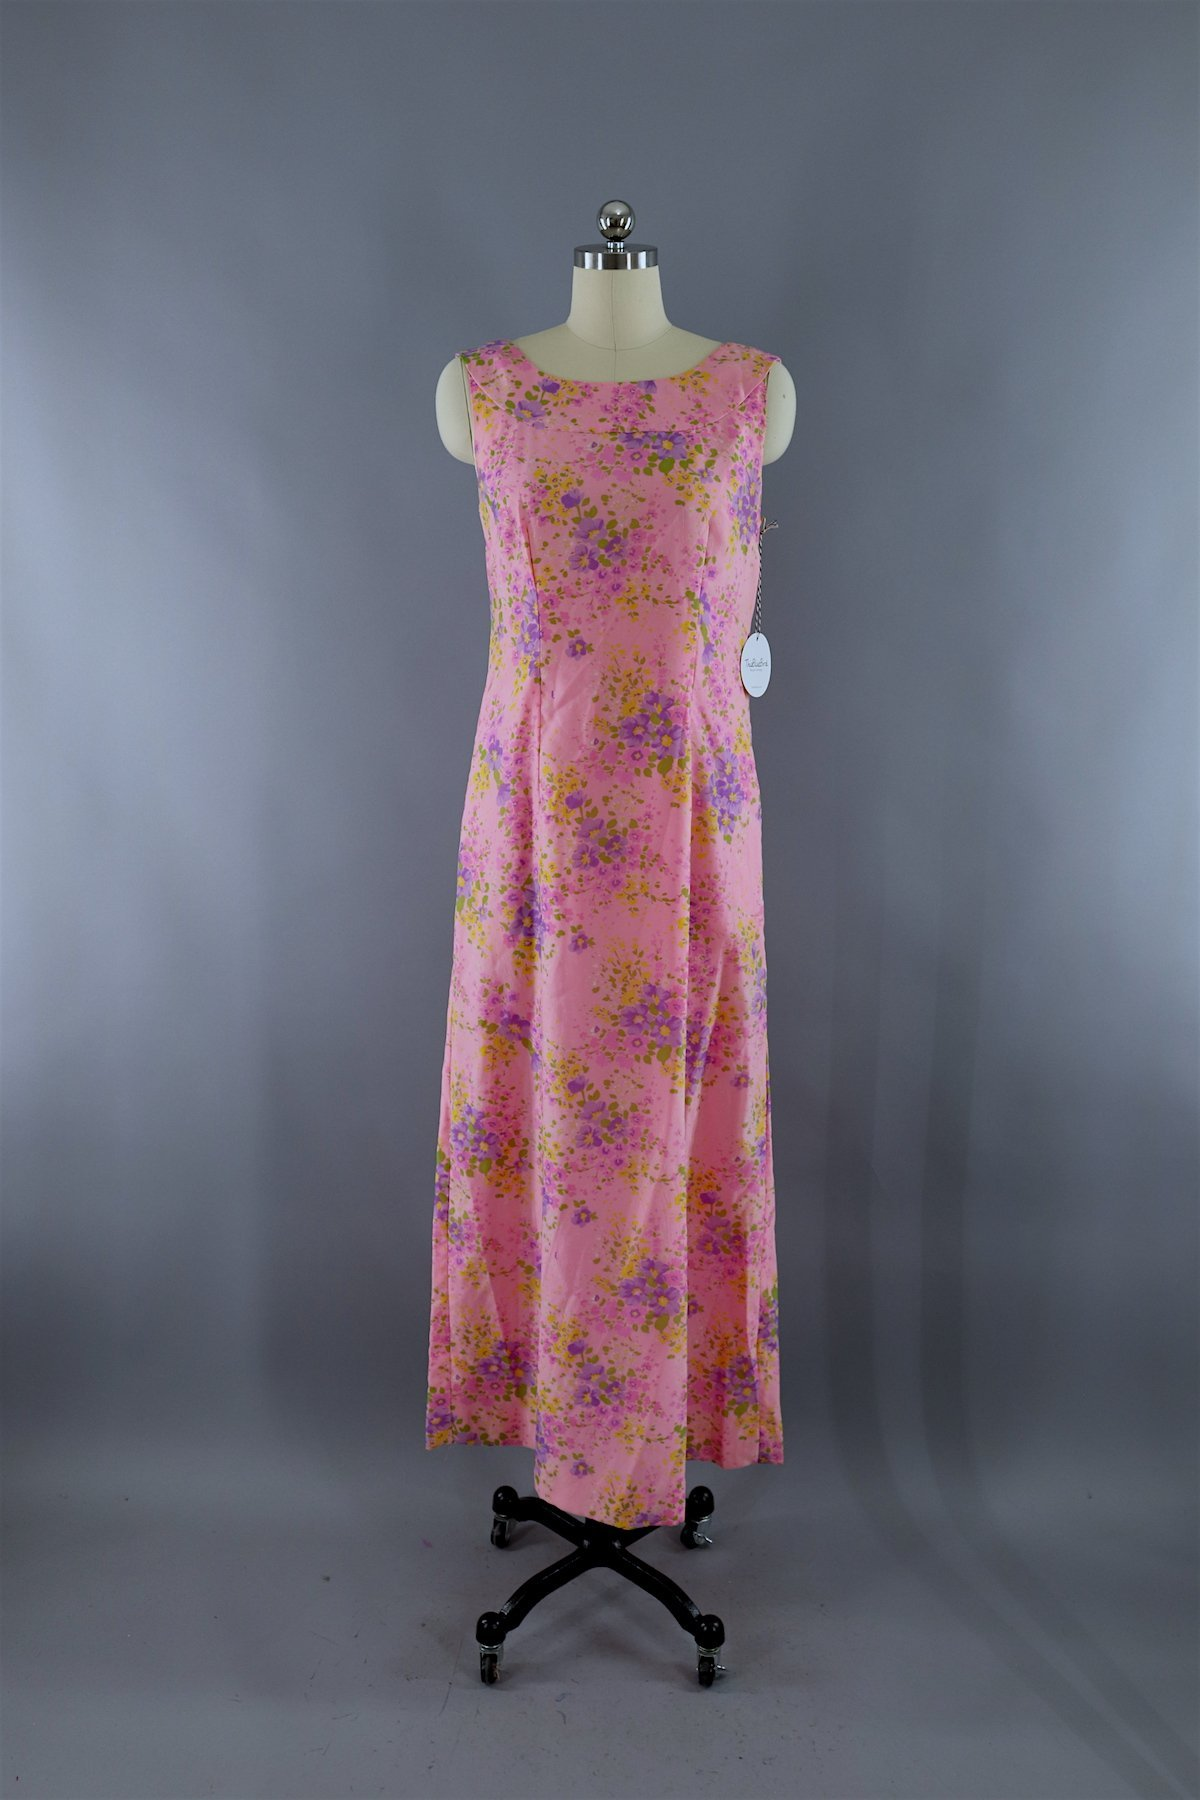 853ae10bde0 Vintage 1960s Pink Floral Print Maxi Dress  vintage  vintagestyle   vintageclothes  vintagefashion  fashion  vintagegirl  vintageclothing   shopvintage ...